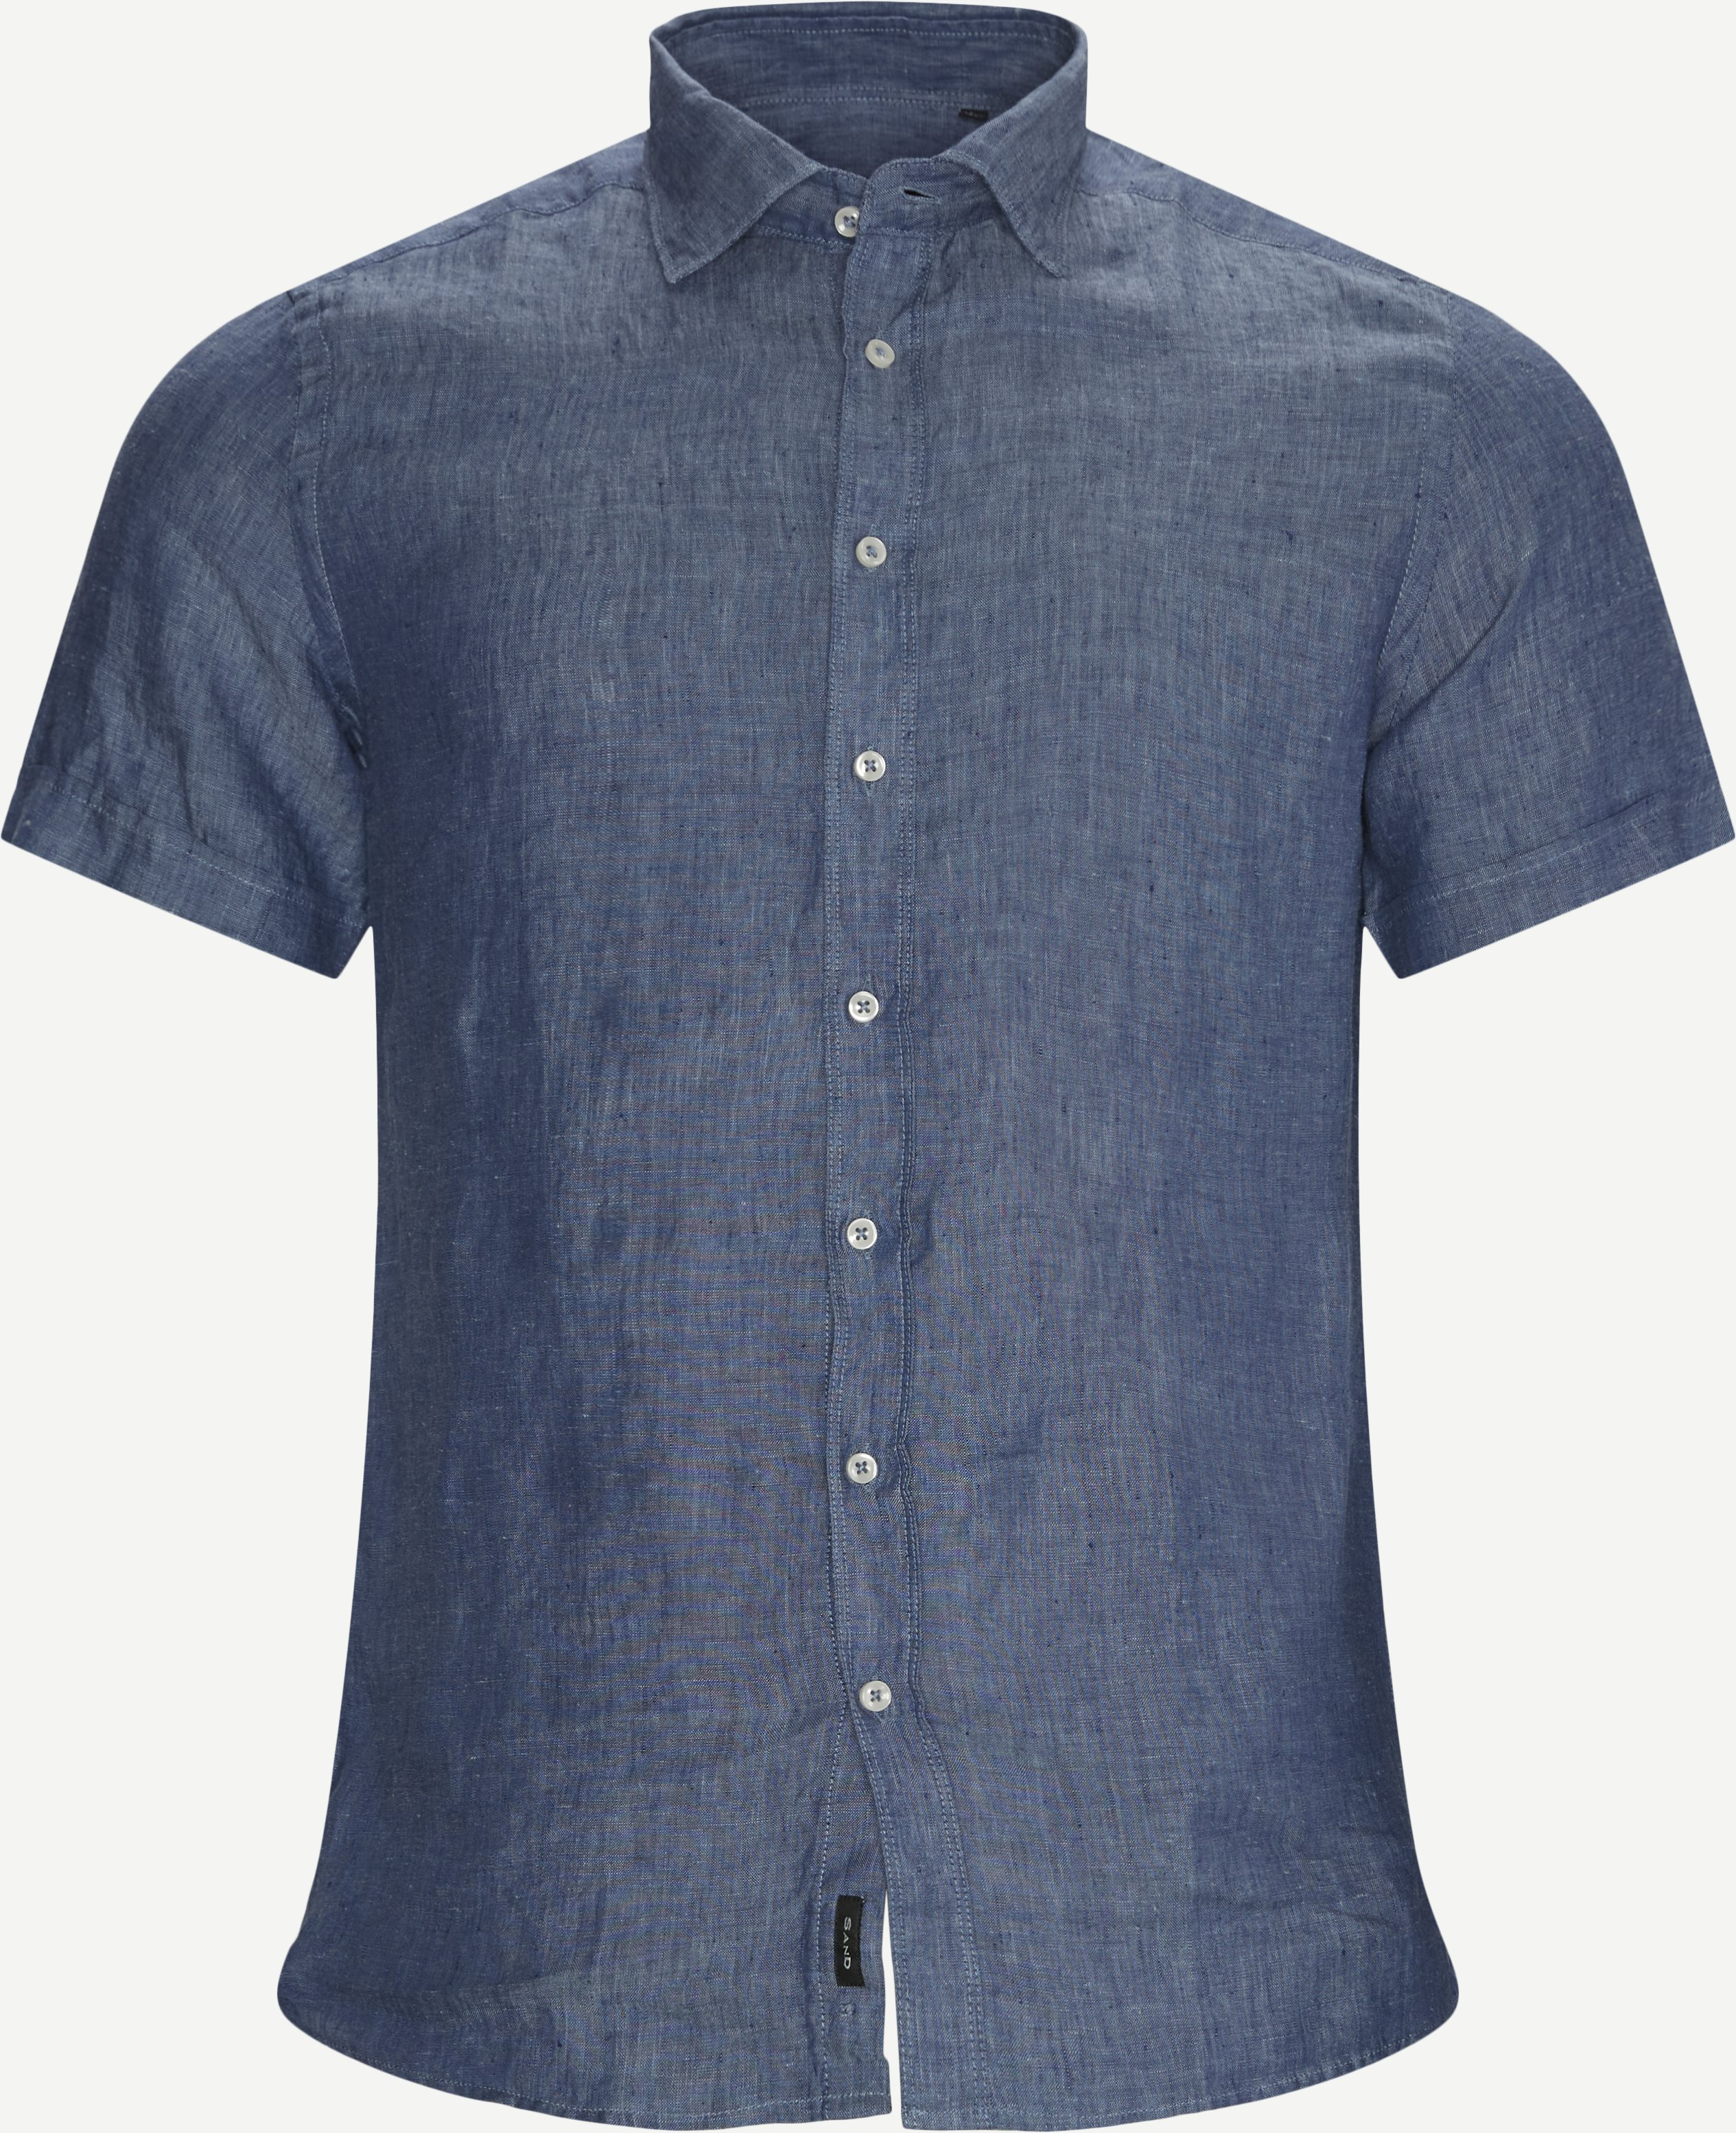 Iver State K/Æ Skjorte - Short-sleeved shirts - Slim - Blue